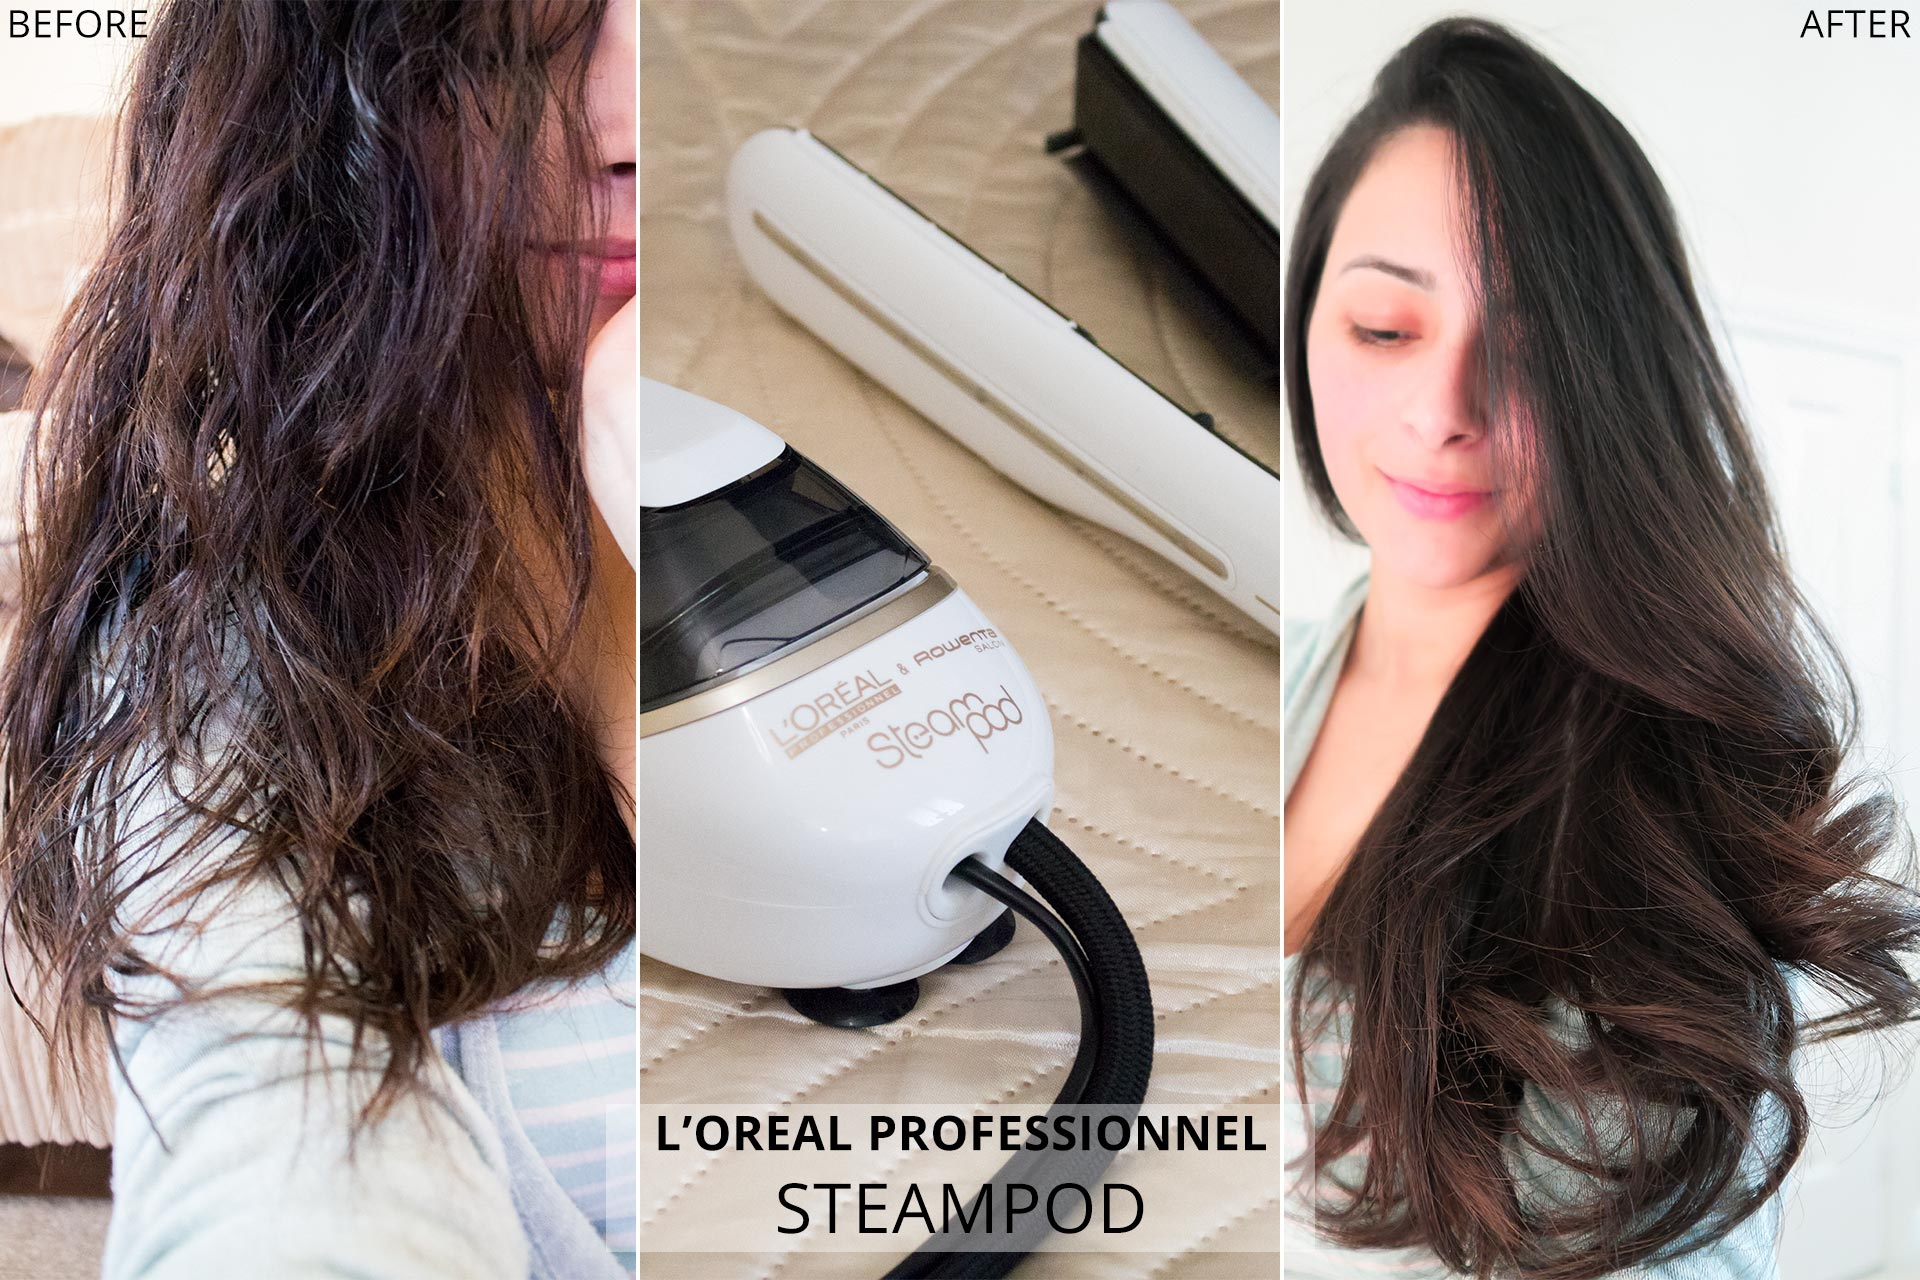 L'Oreal Steampod Review (Before and After)